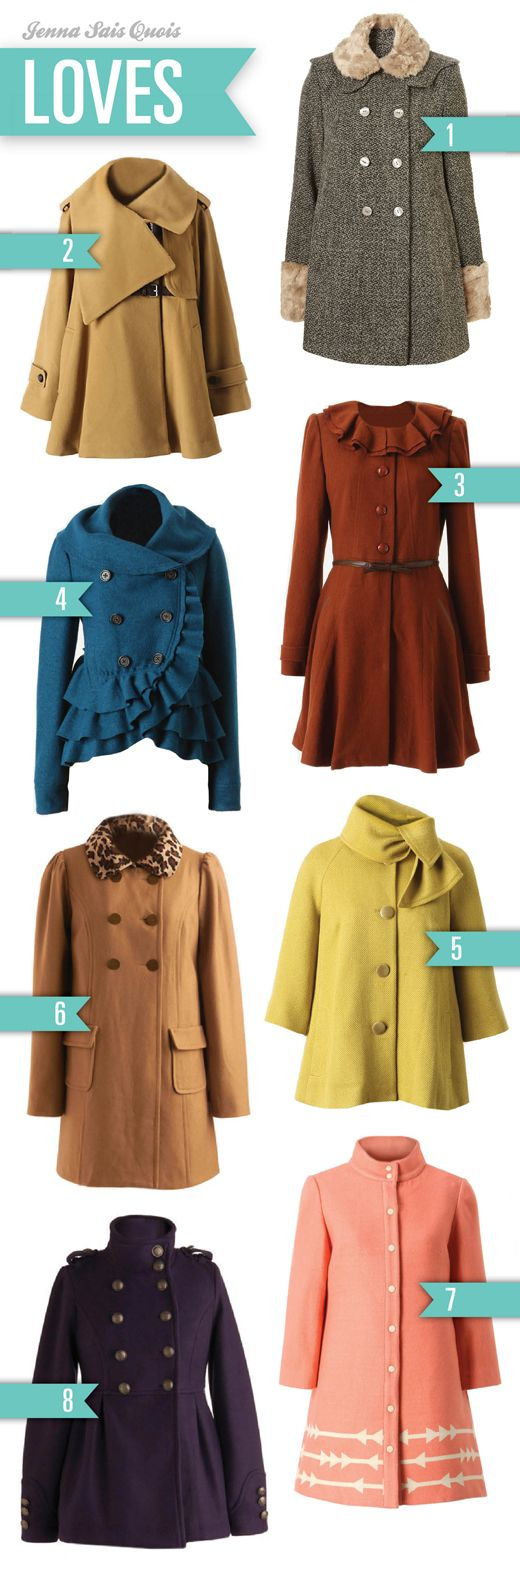 beautiful coats. love the blue one